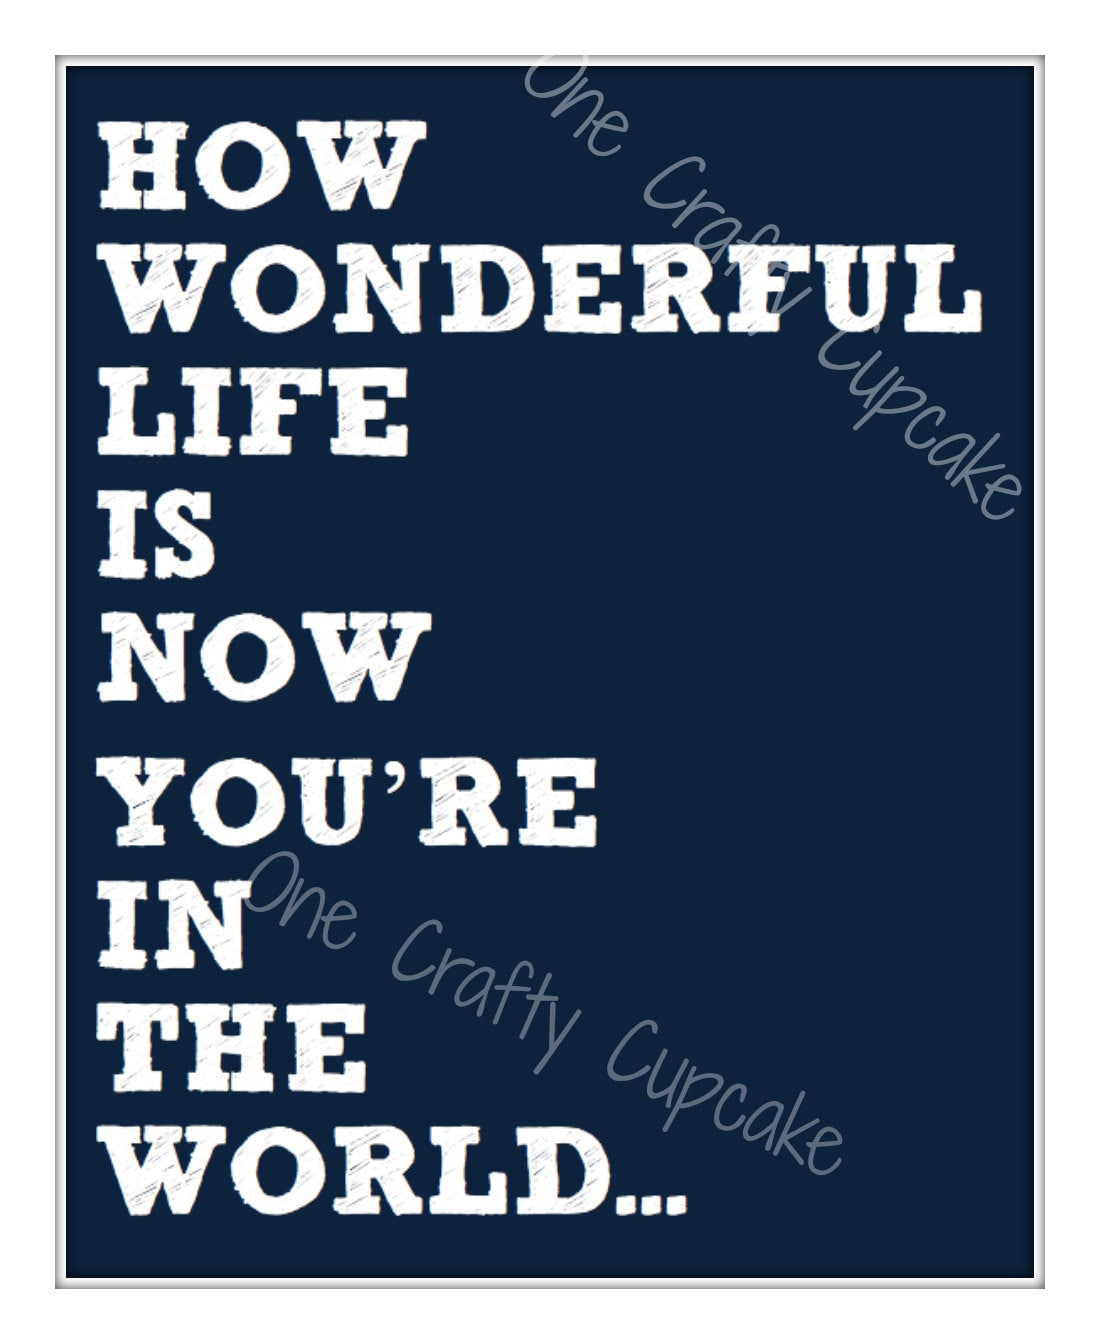 You Re Wonderful: How Wonderful Life Is Now You're In The World By